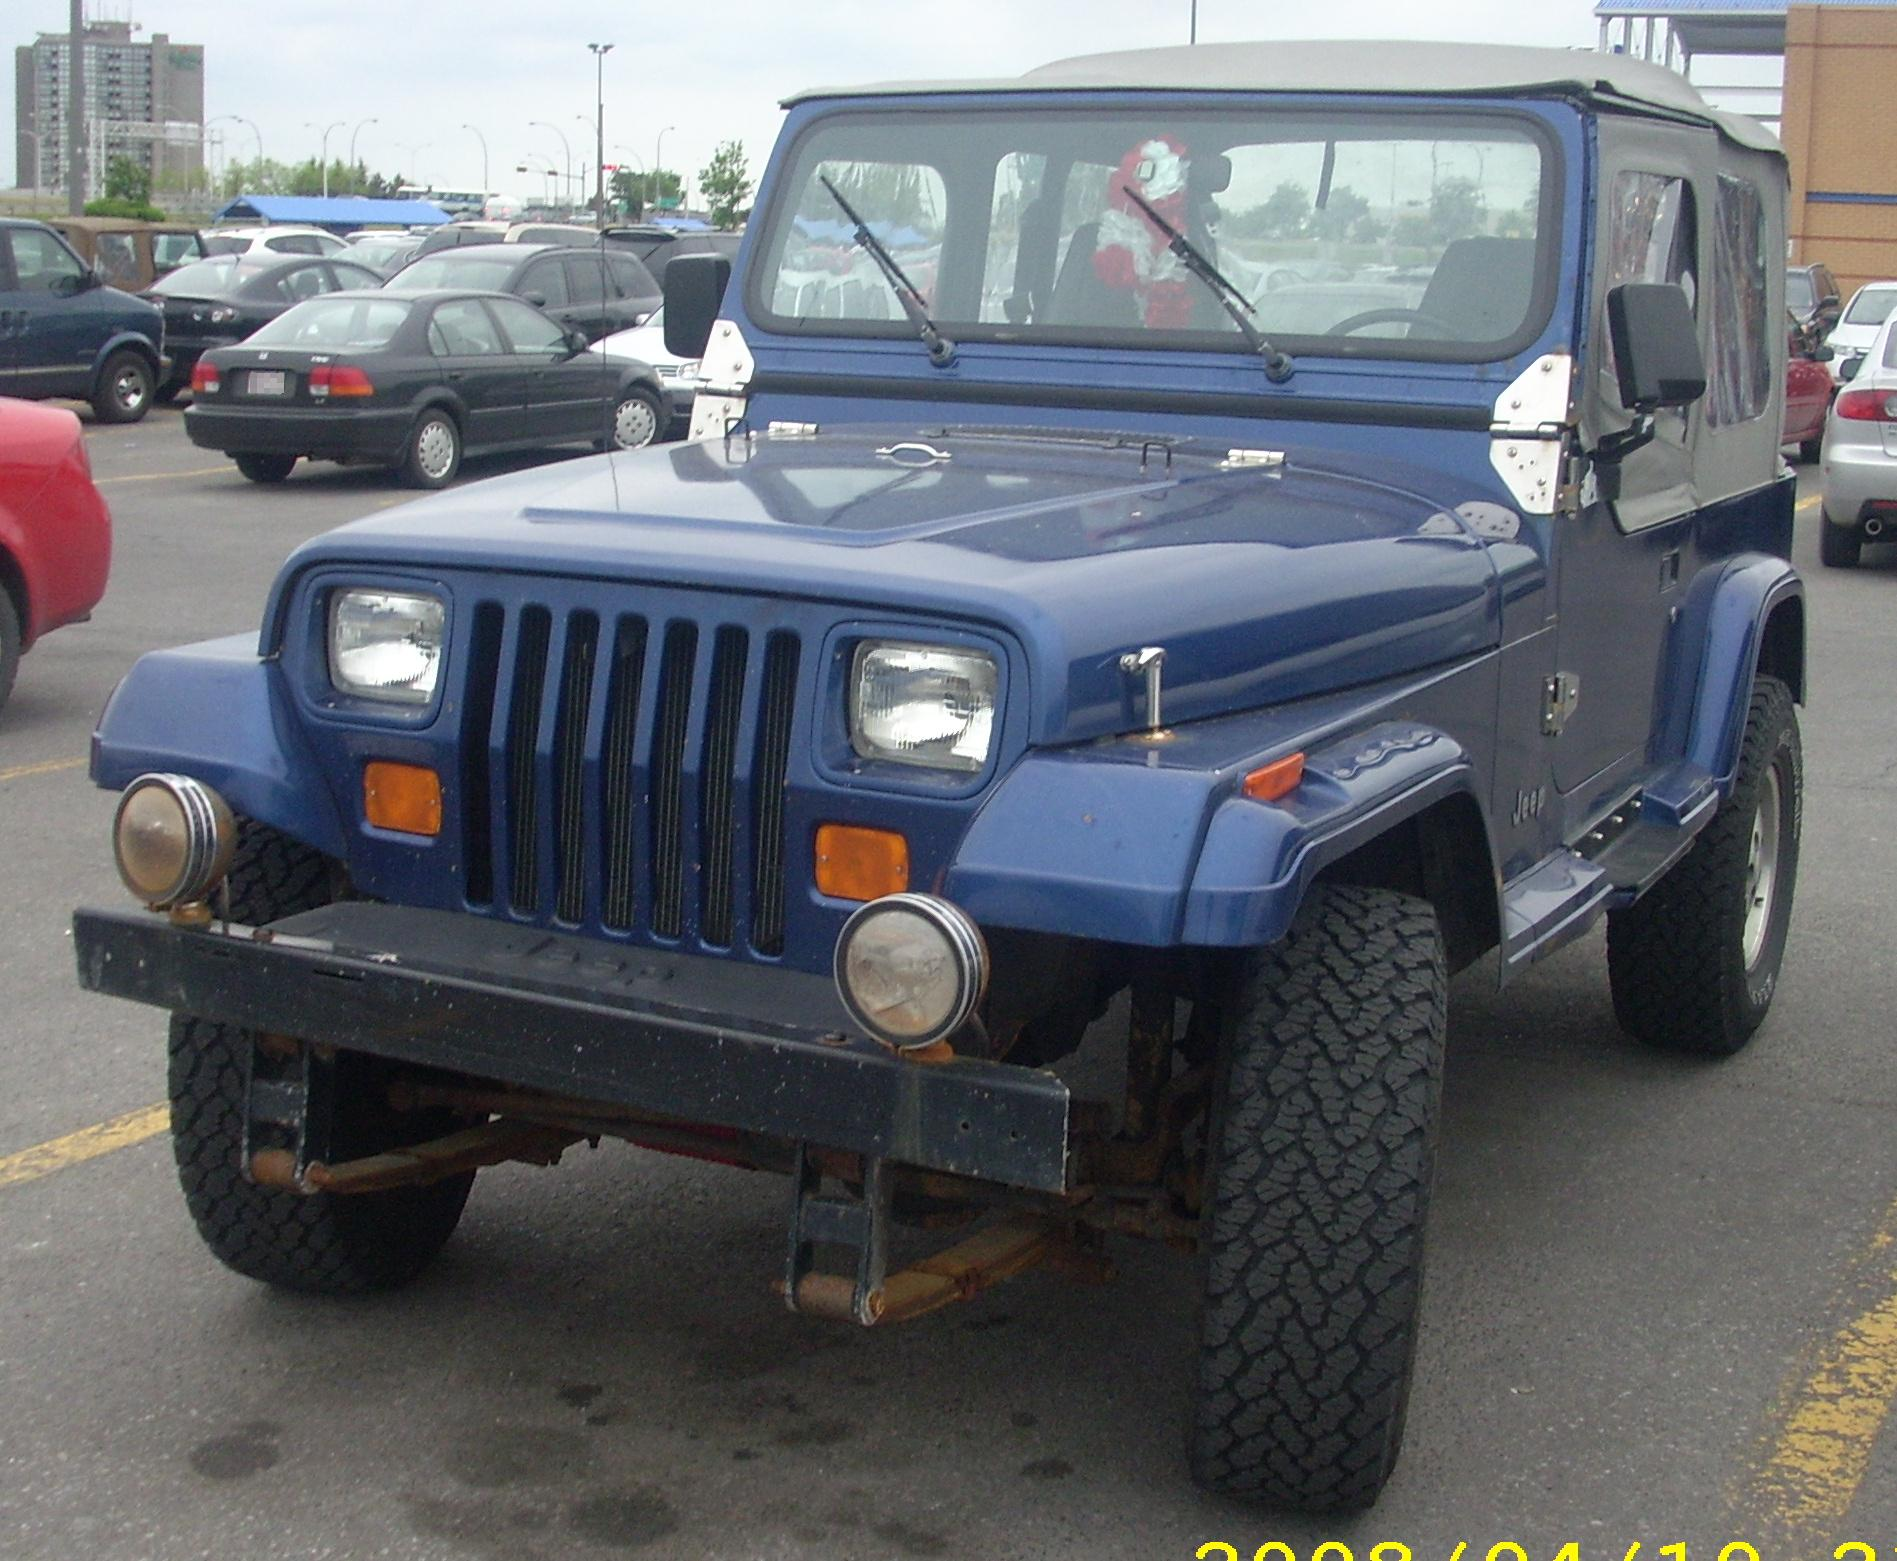 FileJeep Wrangler Convertible YJJPG  Wikimedia Commons